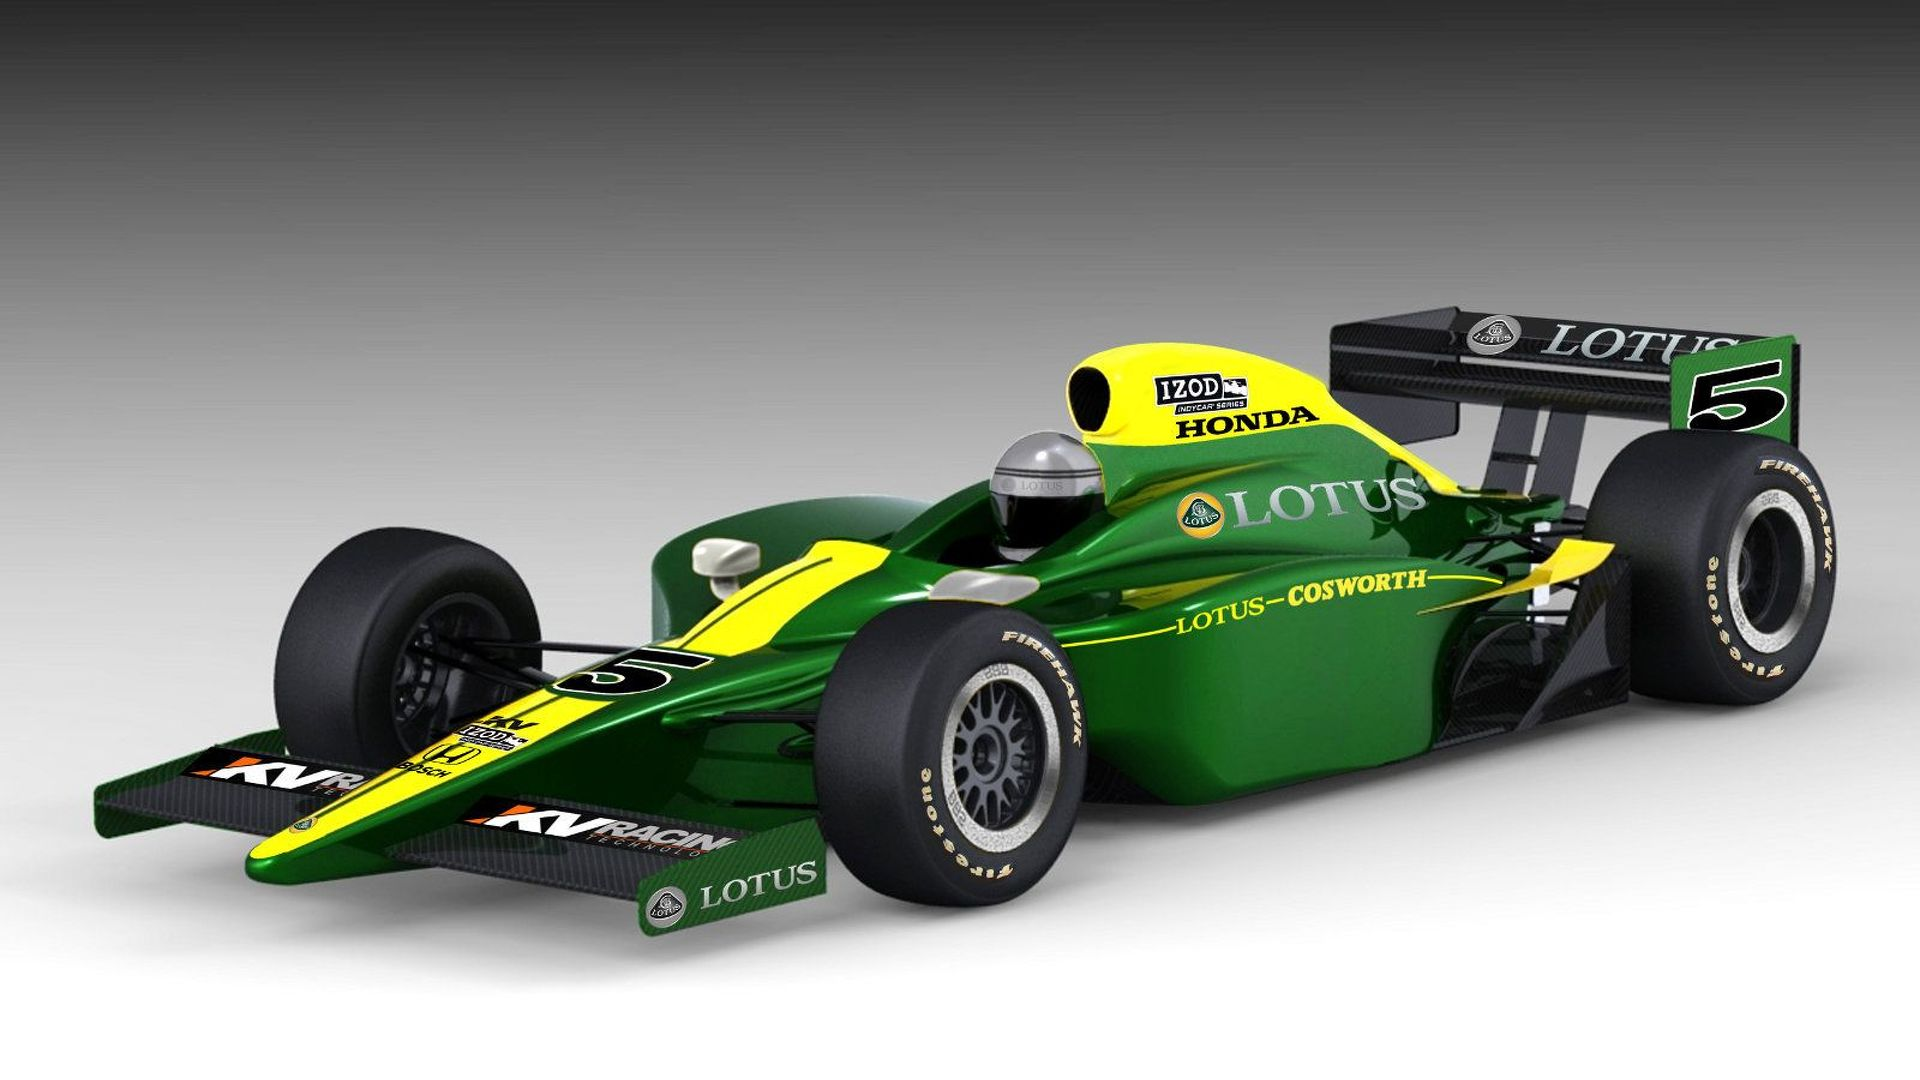 Lotus-Cosworth Returns to 2010 IndyCar Series